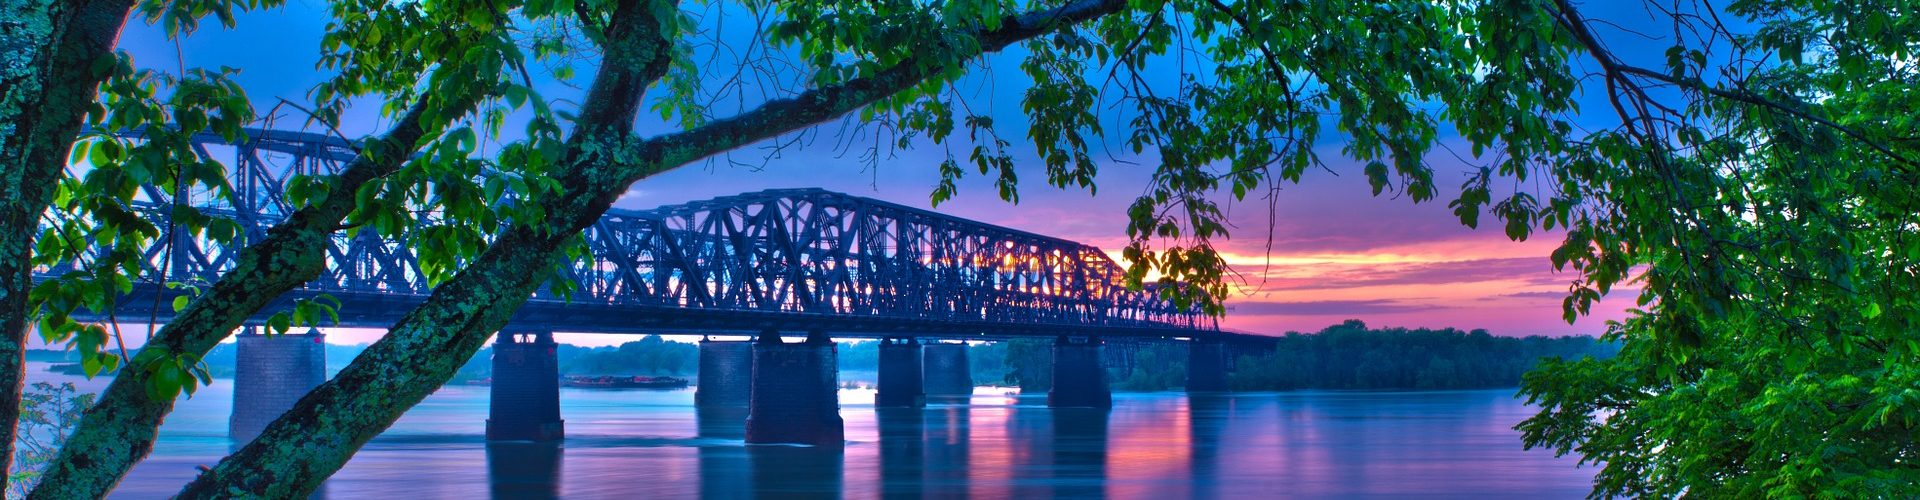 Mississippi River Bridge - Moving to Baton Rouge